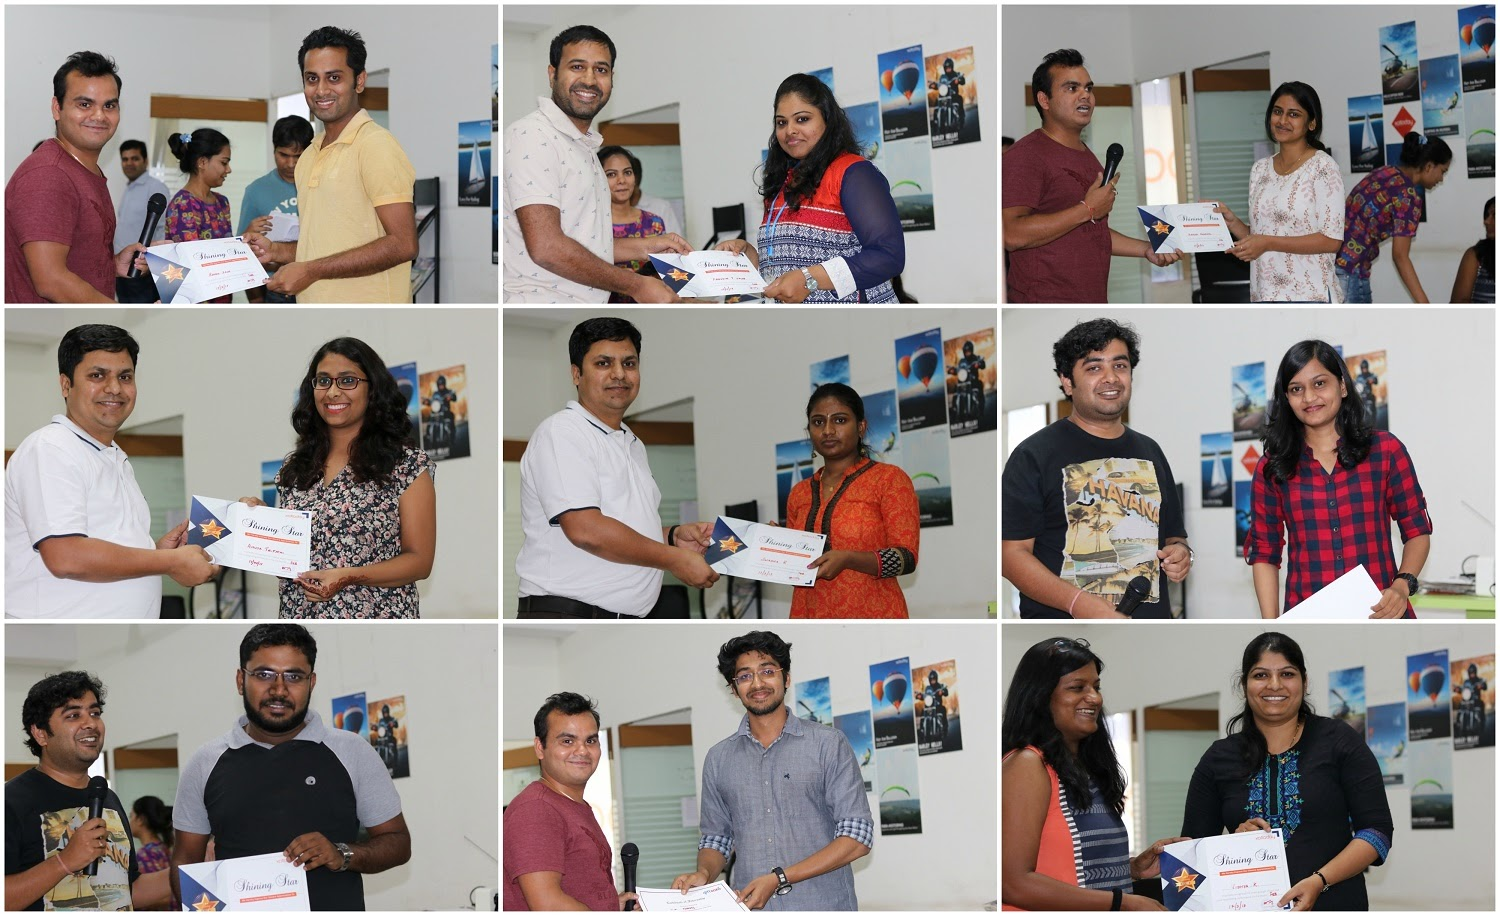 The performance award winners for the month of March